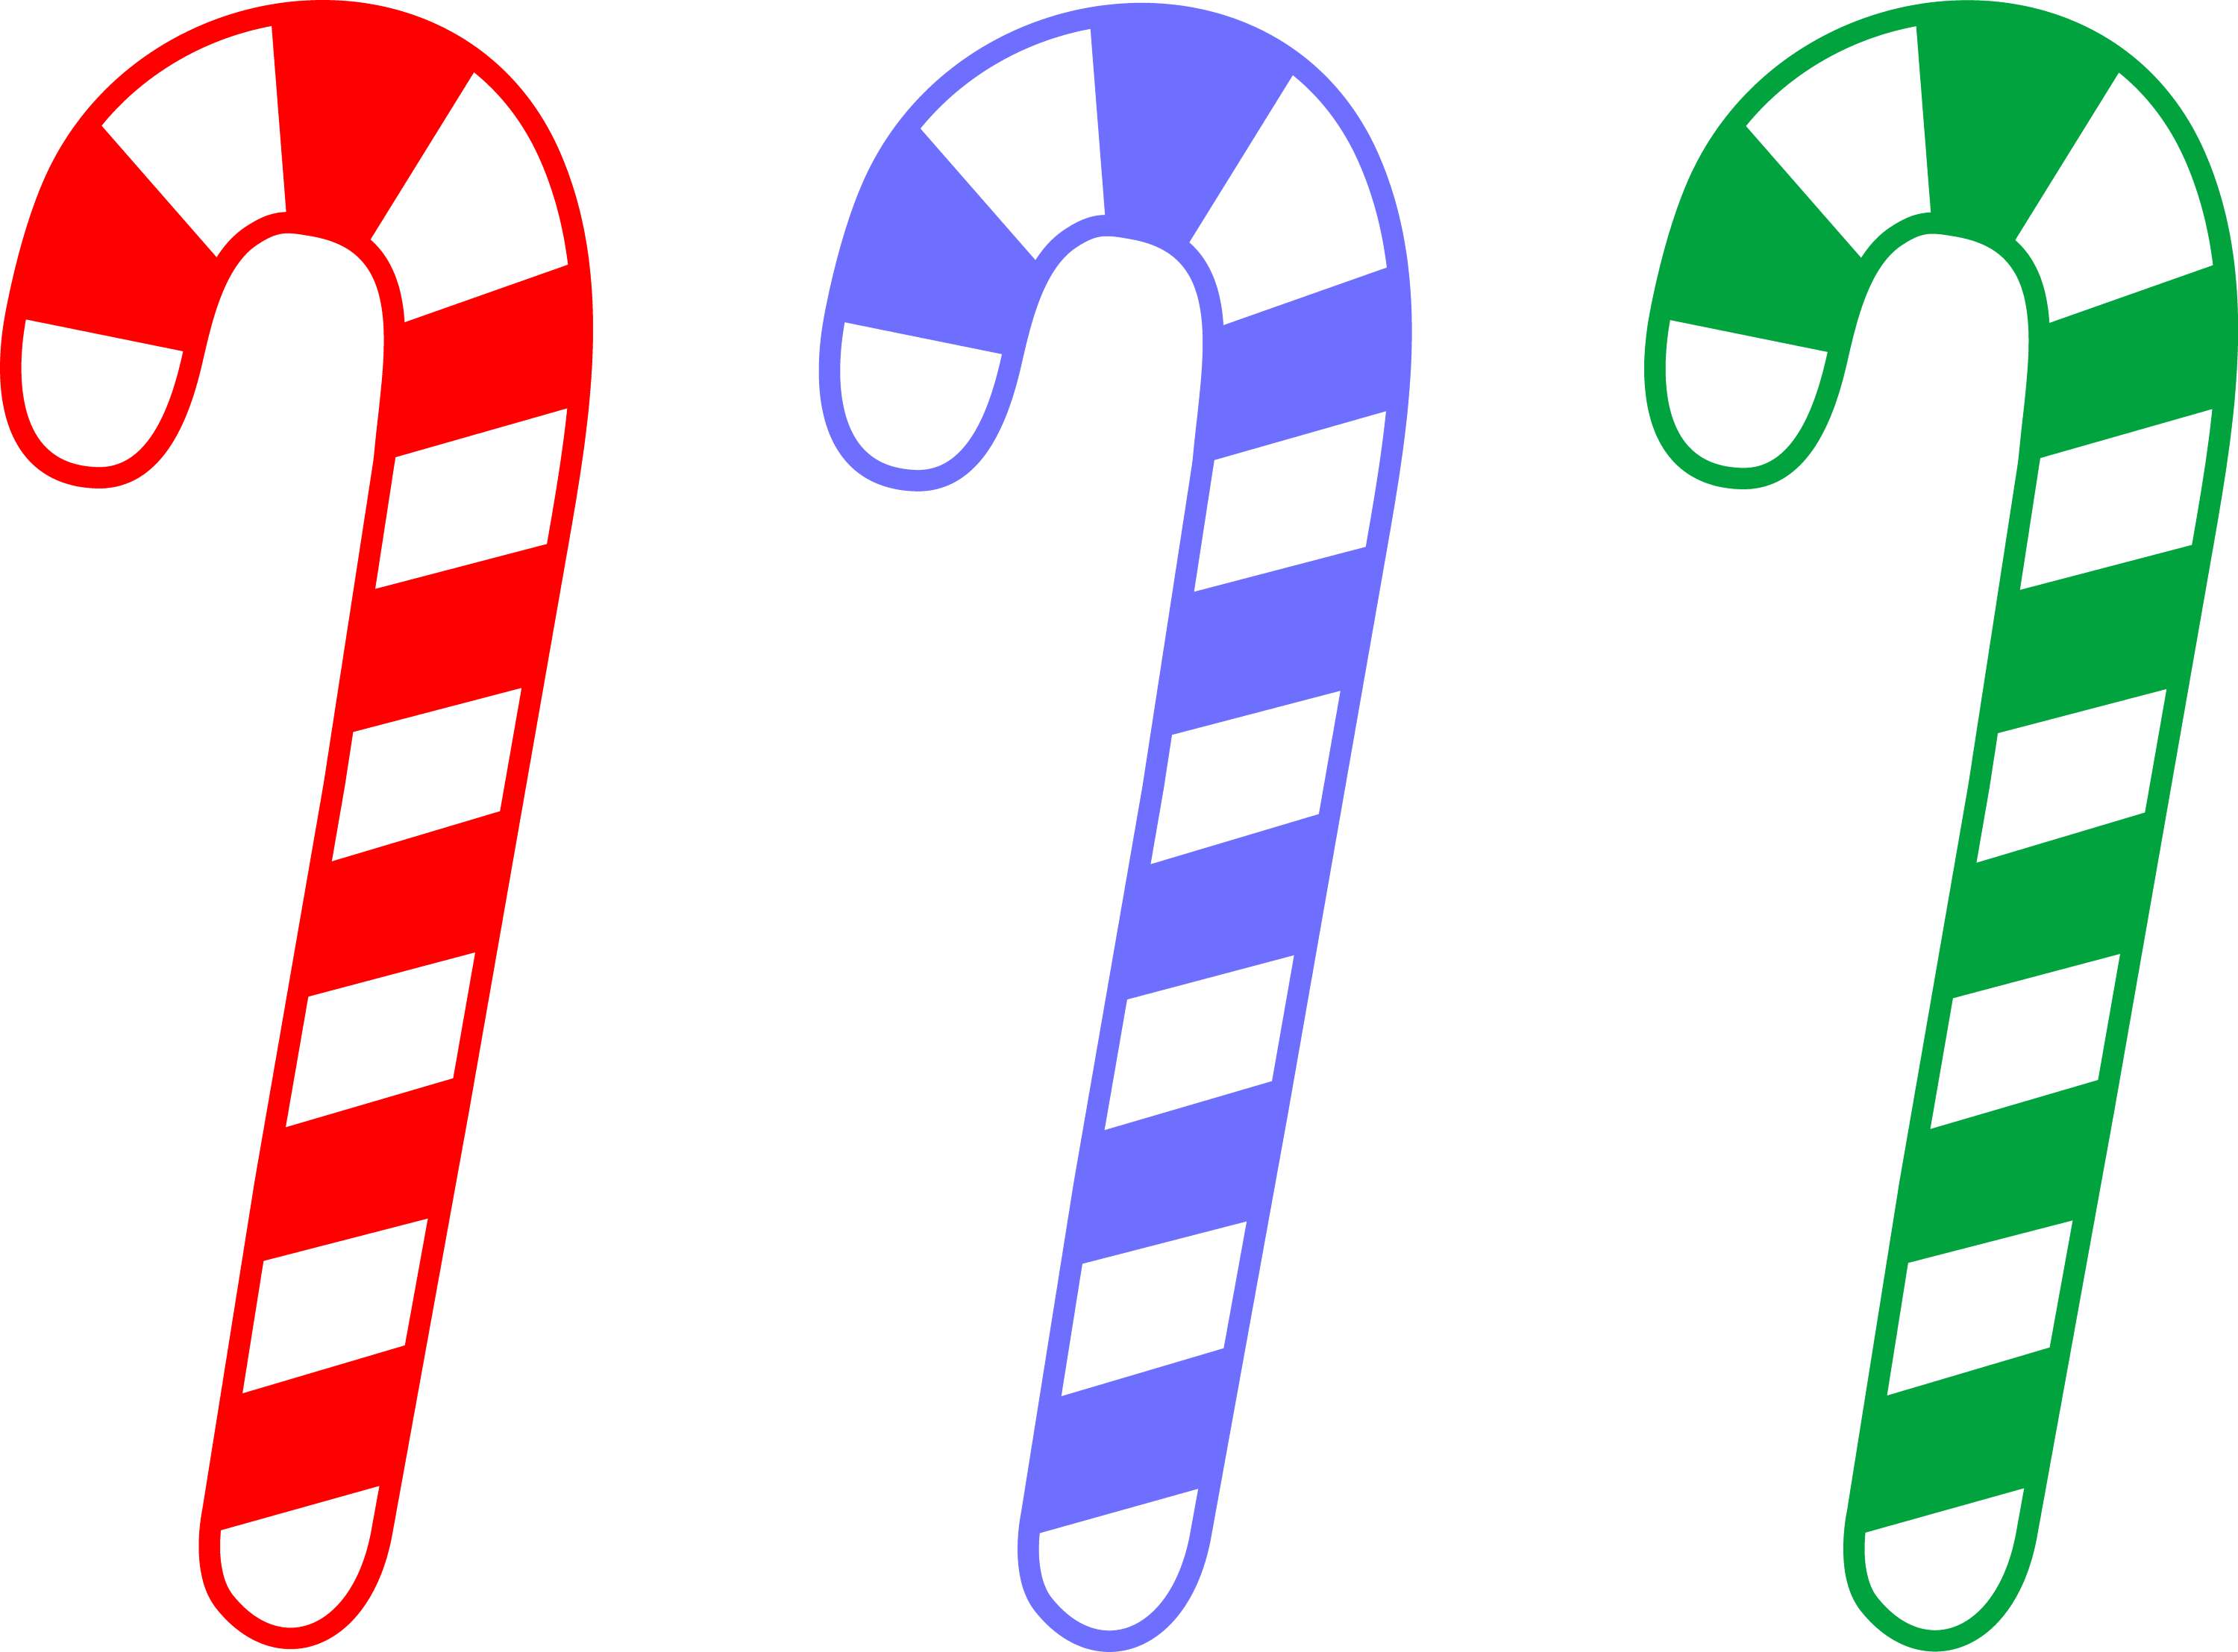 red blue and green candy canes free clip art rh sweetclipart com candy cane clipart border free candy cane clipart free download